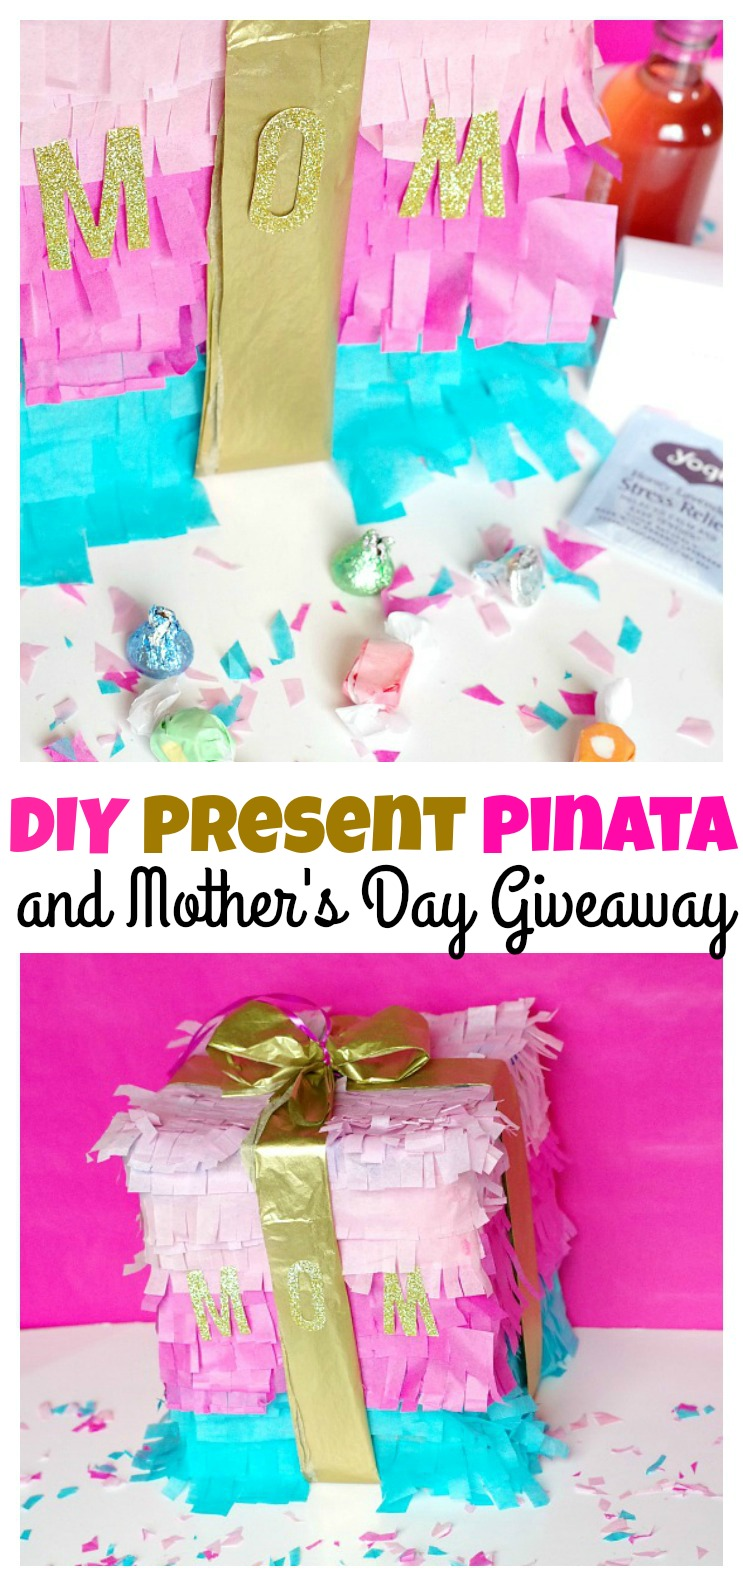 DIY Present Pinata and Mother's Day Giveaway